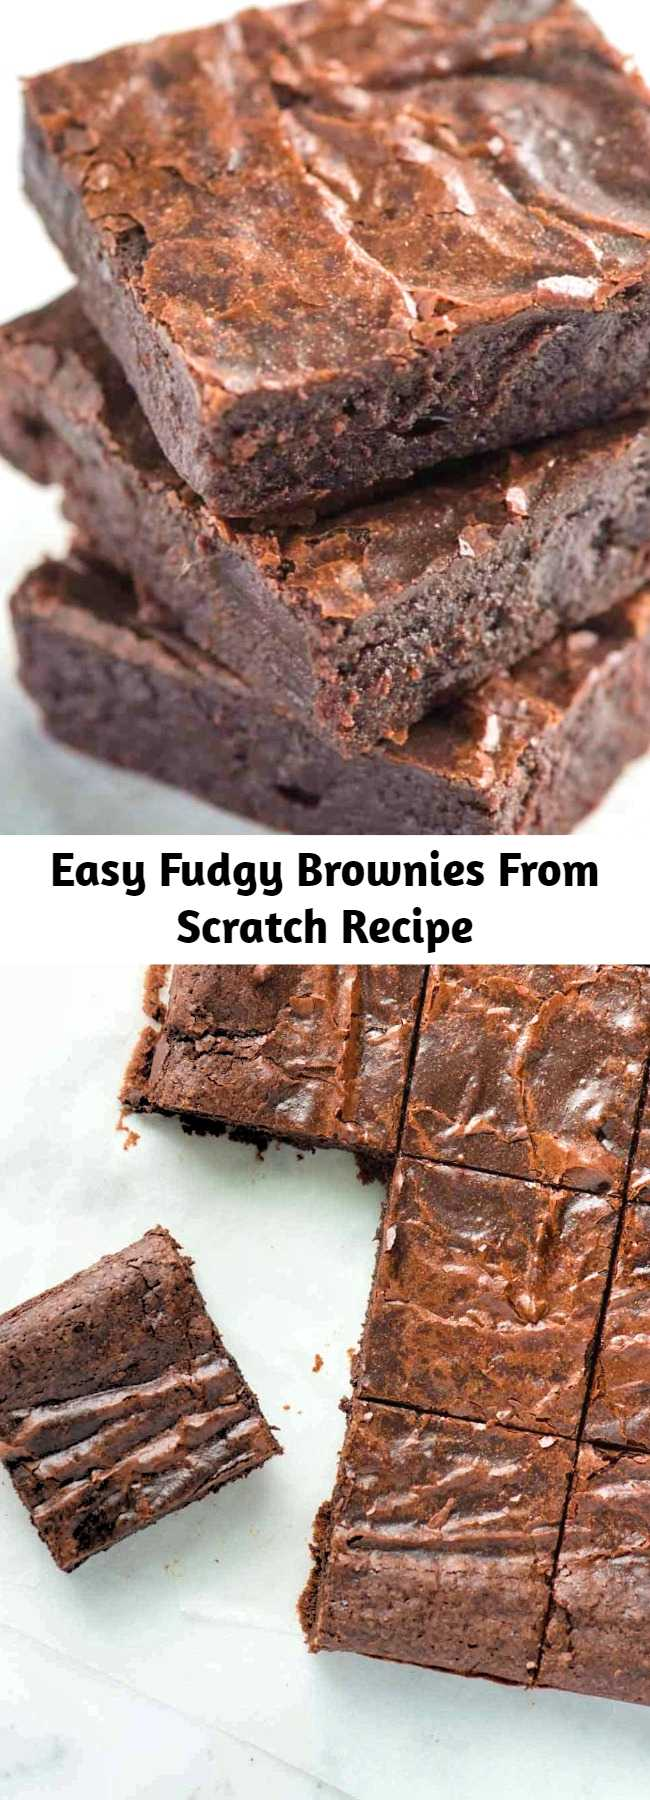 Easy Fudgy Brownies From Scratch Recipe - This is my absolute favorite brownie recipe. They are rich, fudgy in the middle, and made completely from scratch. These brownies are so much better than the box, and I bet you have what you need to make them already sitting in your kitchen.